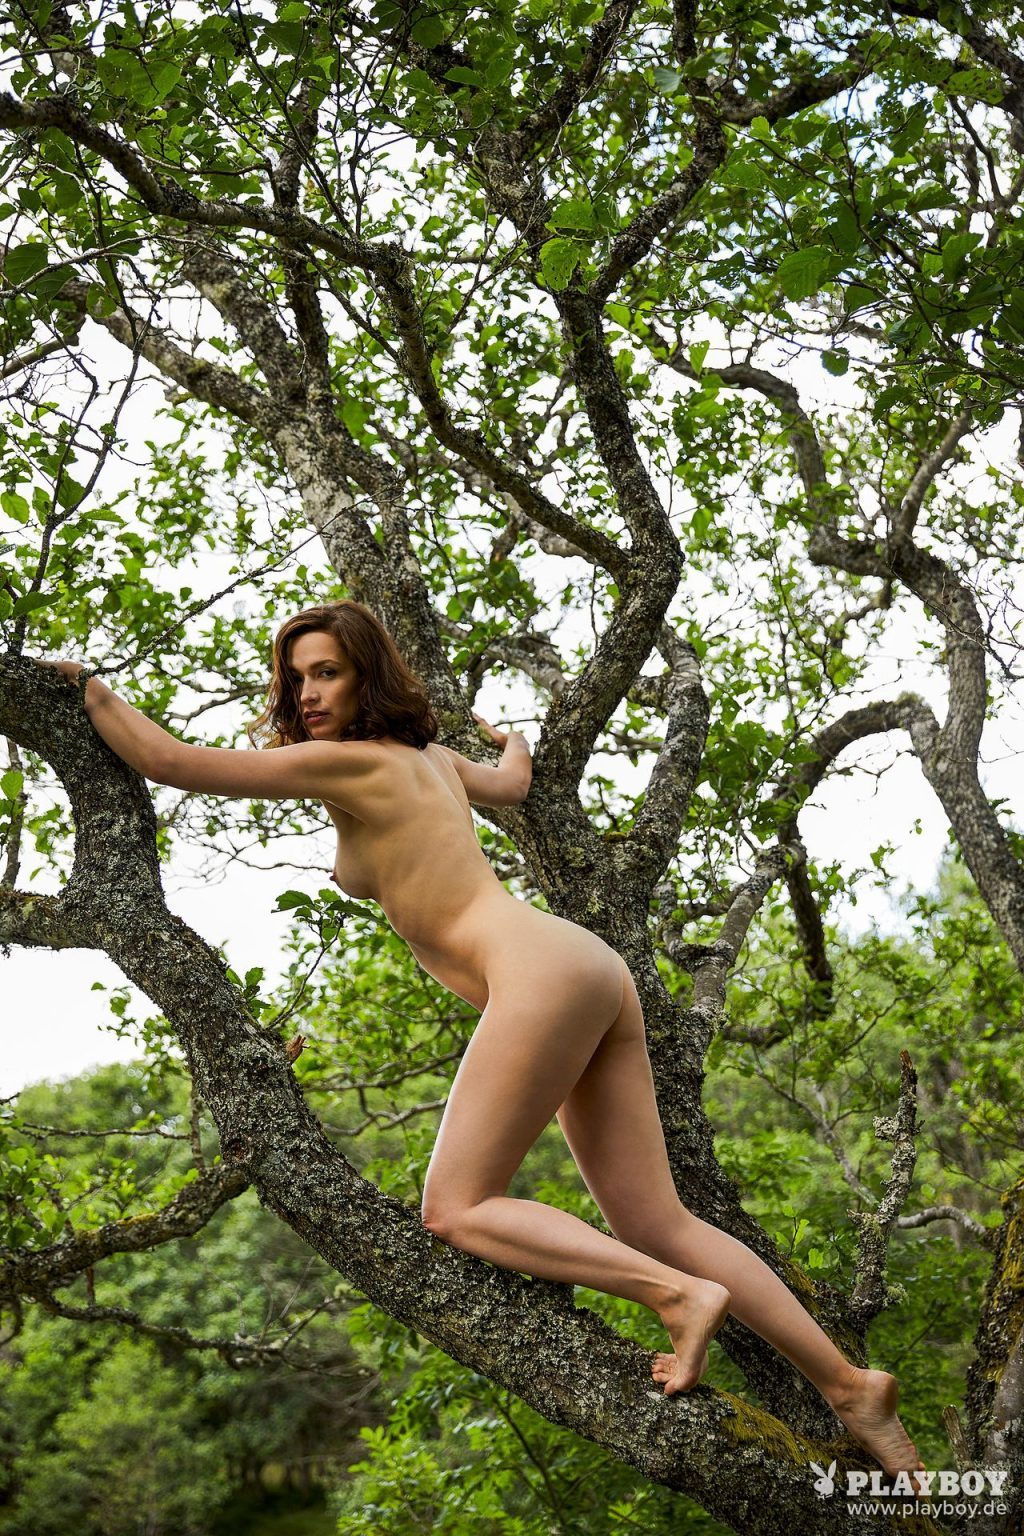 Nudist Brunette Uta Kargel Decides to Climb a Tree